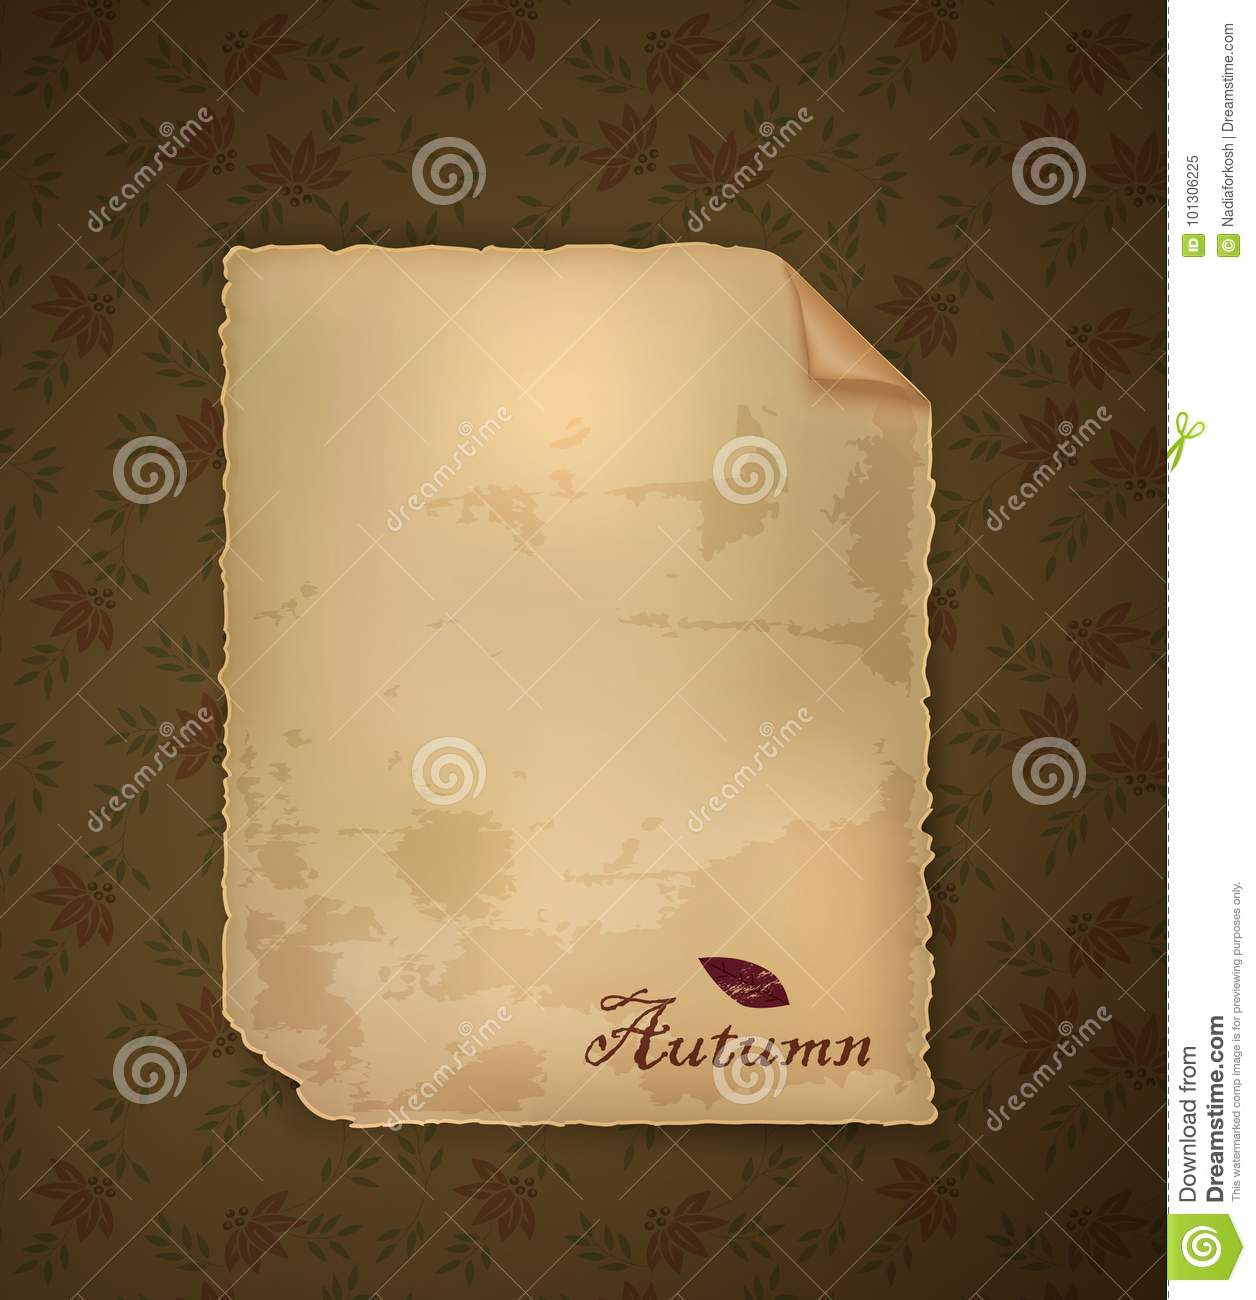 Autumn invitation empty old paper letter on the autumn background download autumn invitation empty old paper letter on the autumn background vector stock vector stopboris Images